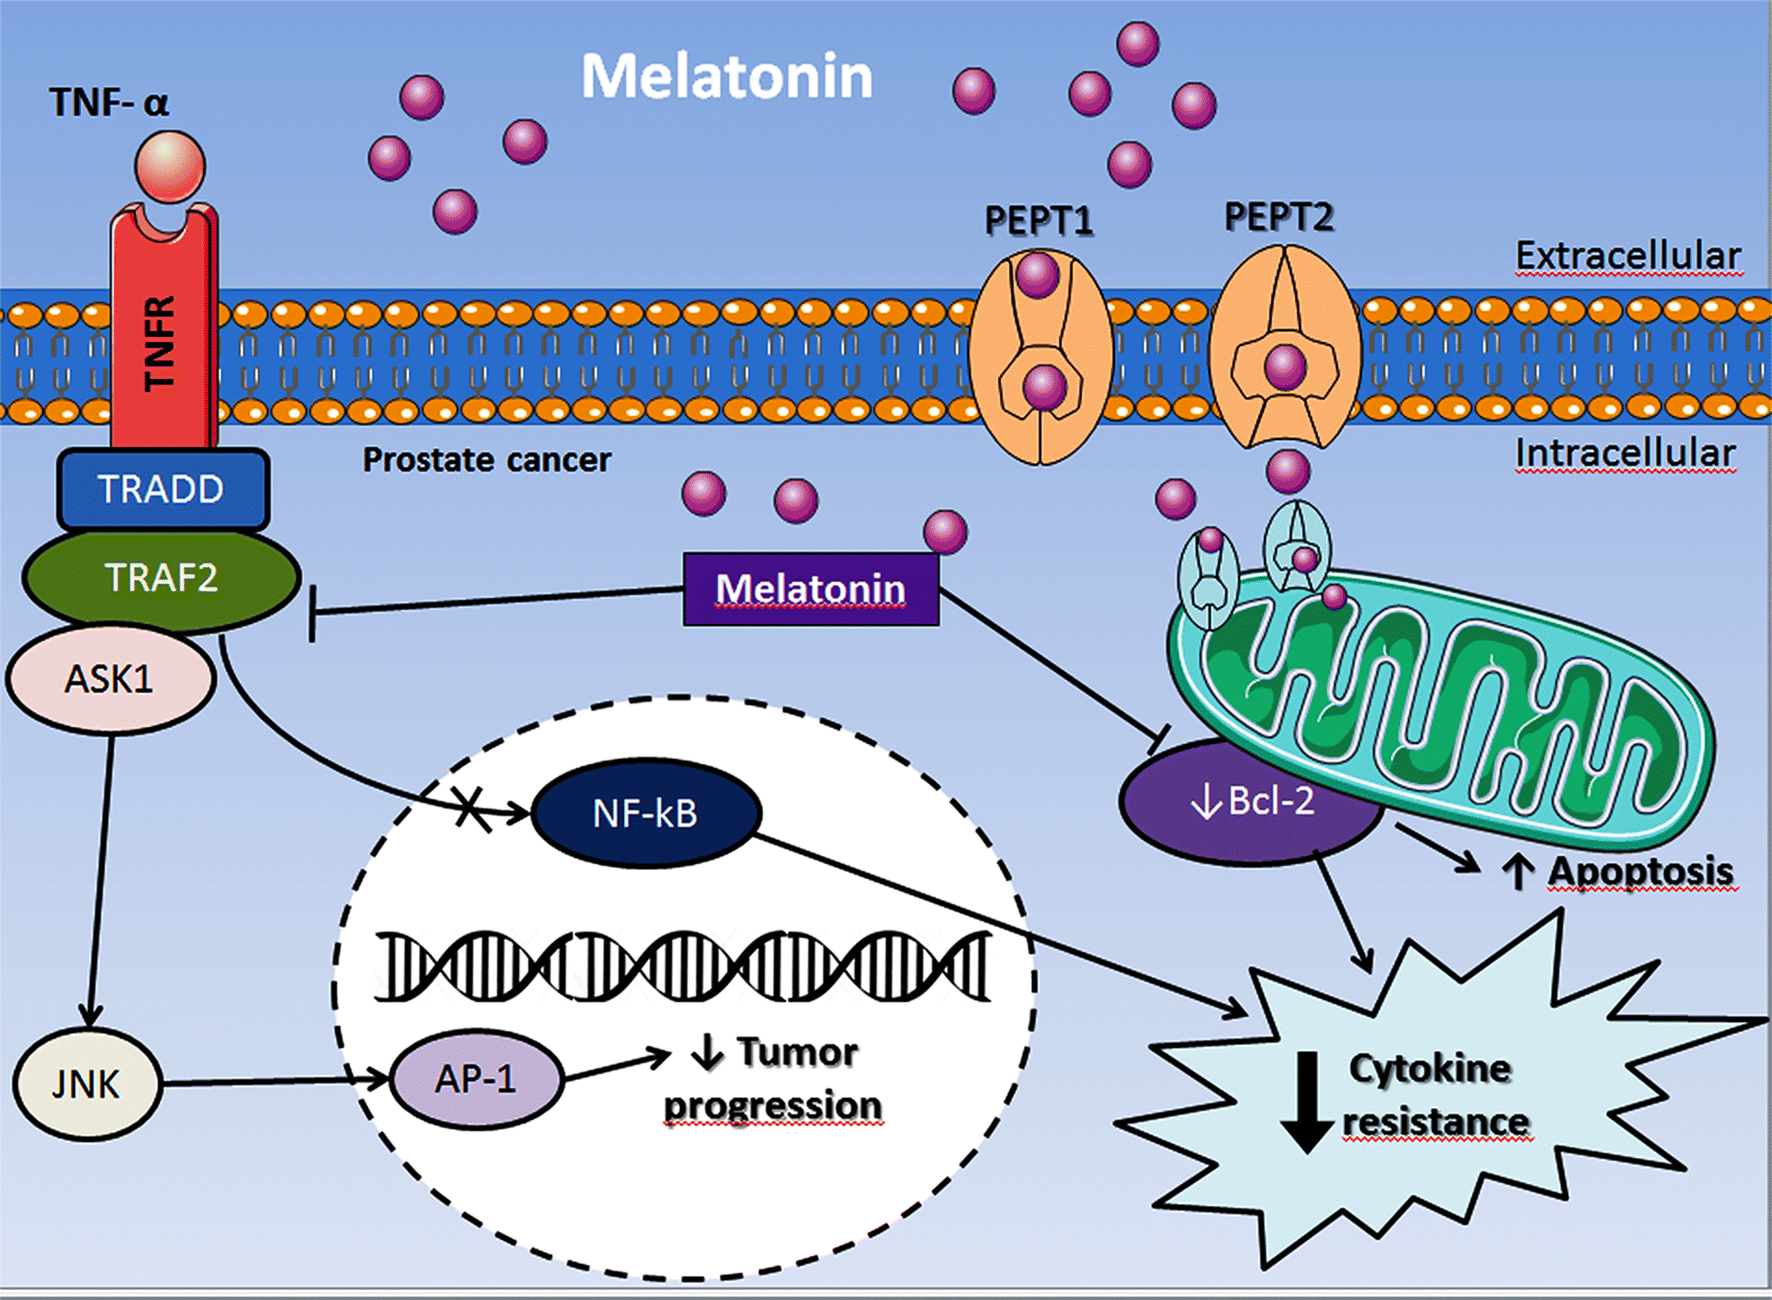 Mitochondrial functions and melatonin: a tour of the